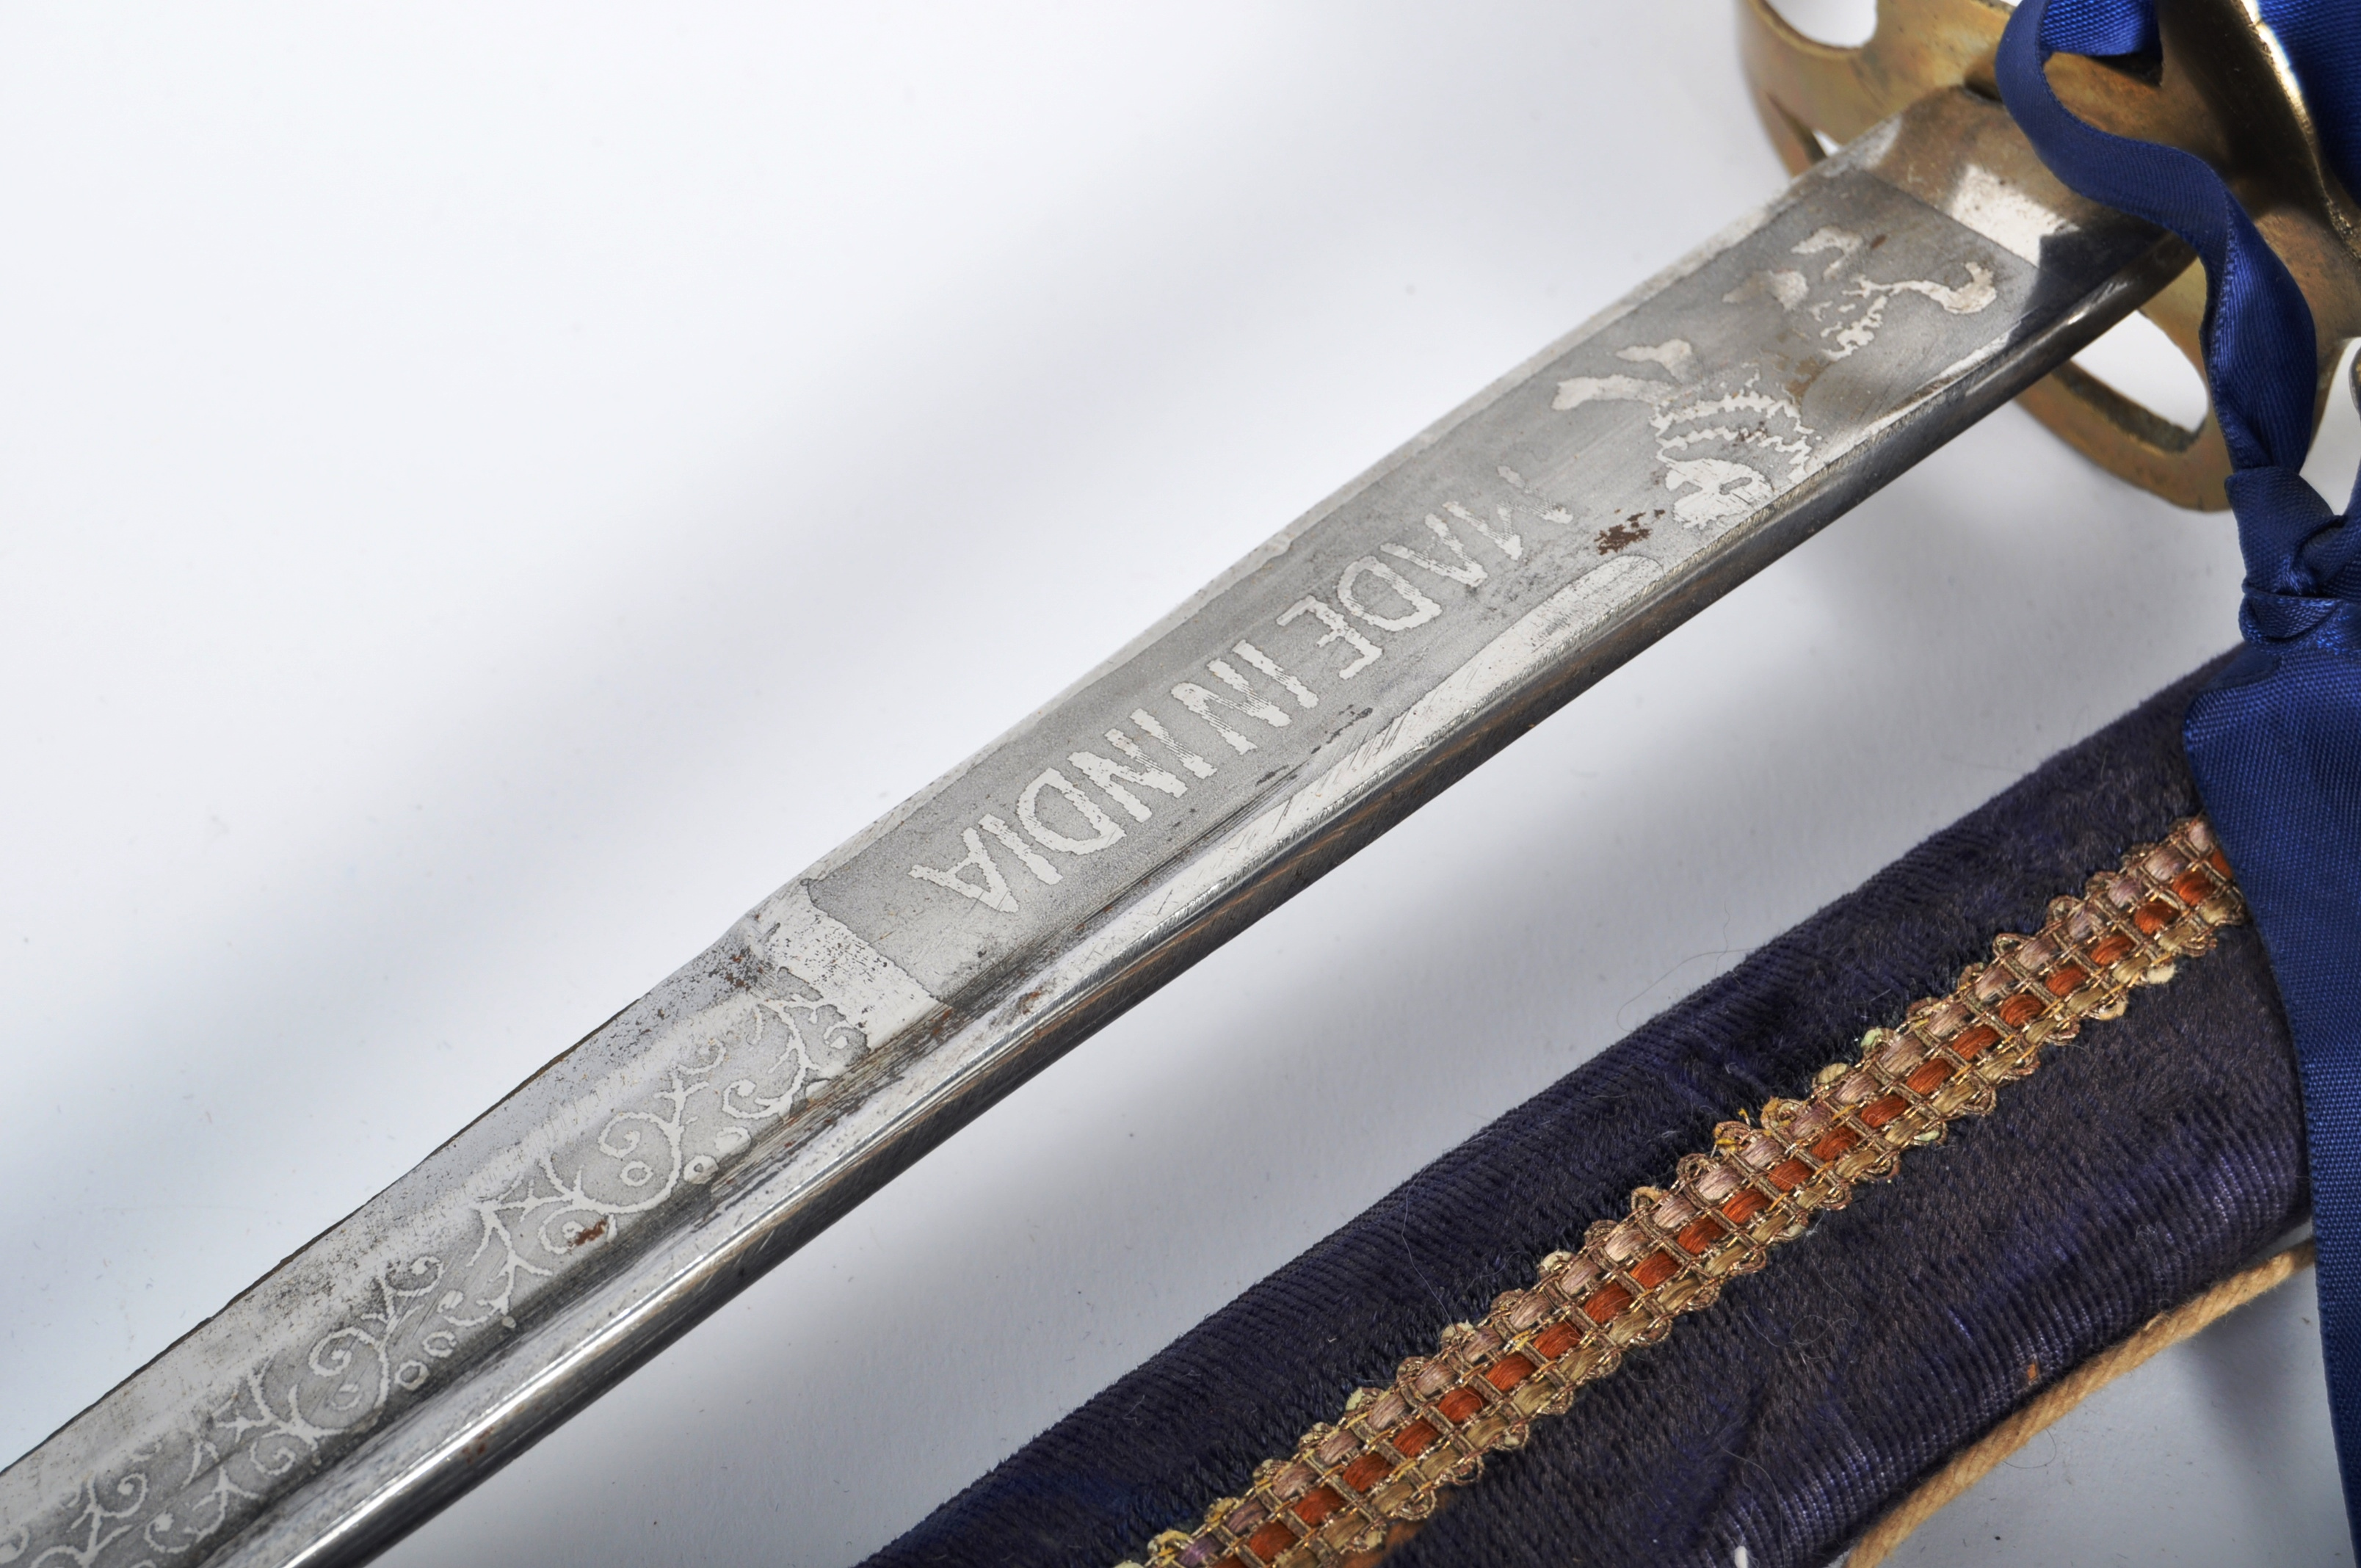 PAIR OF EARLY 20TH CENTURY INDIAN CAVALRY SWORDS - Image 4 of 9